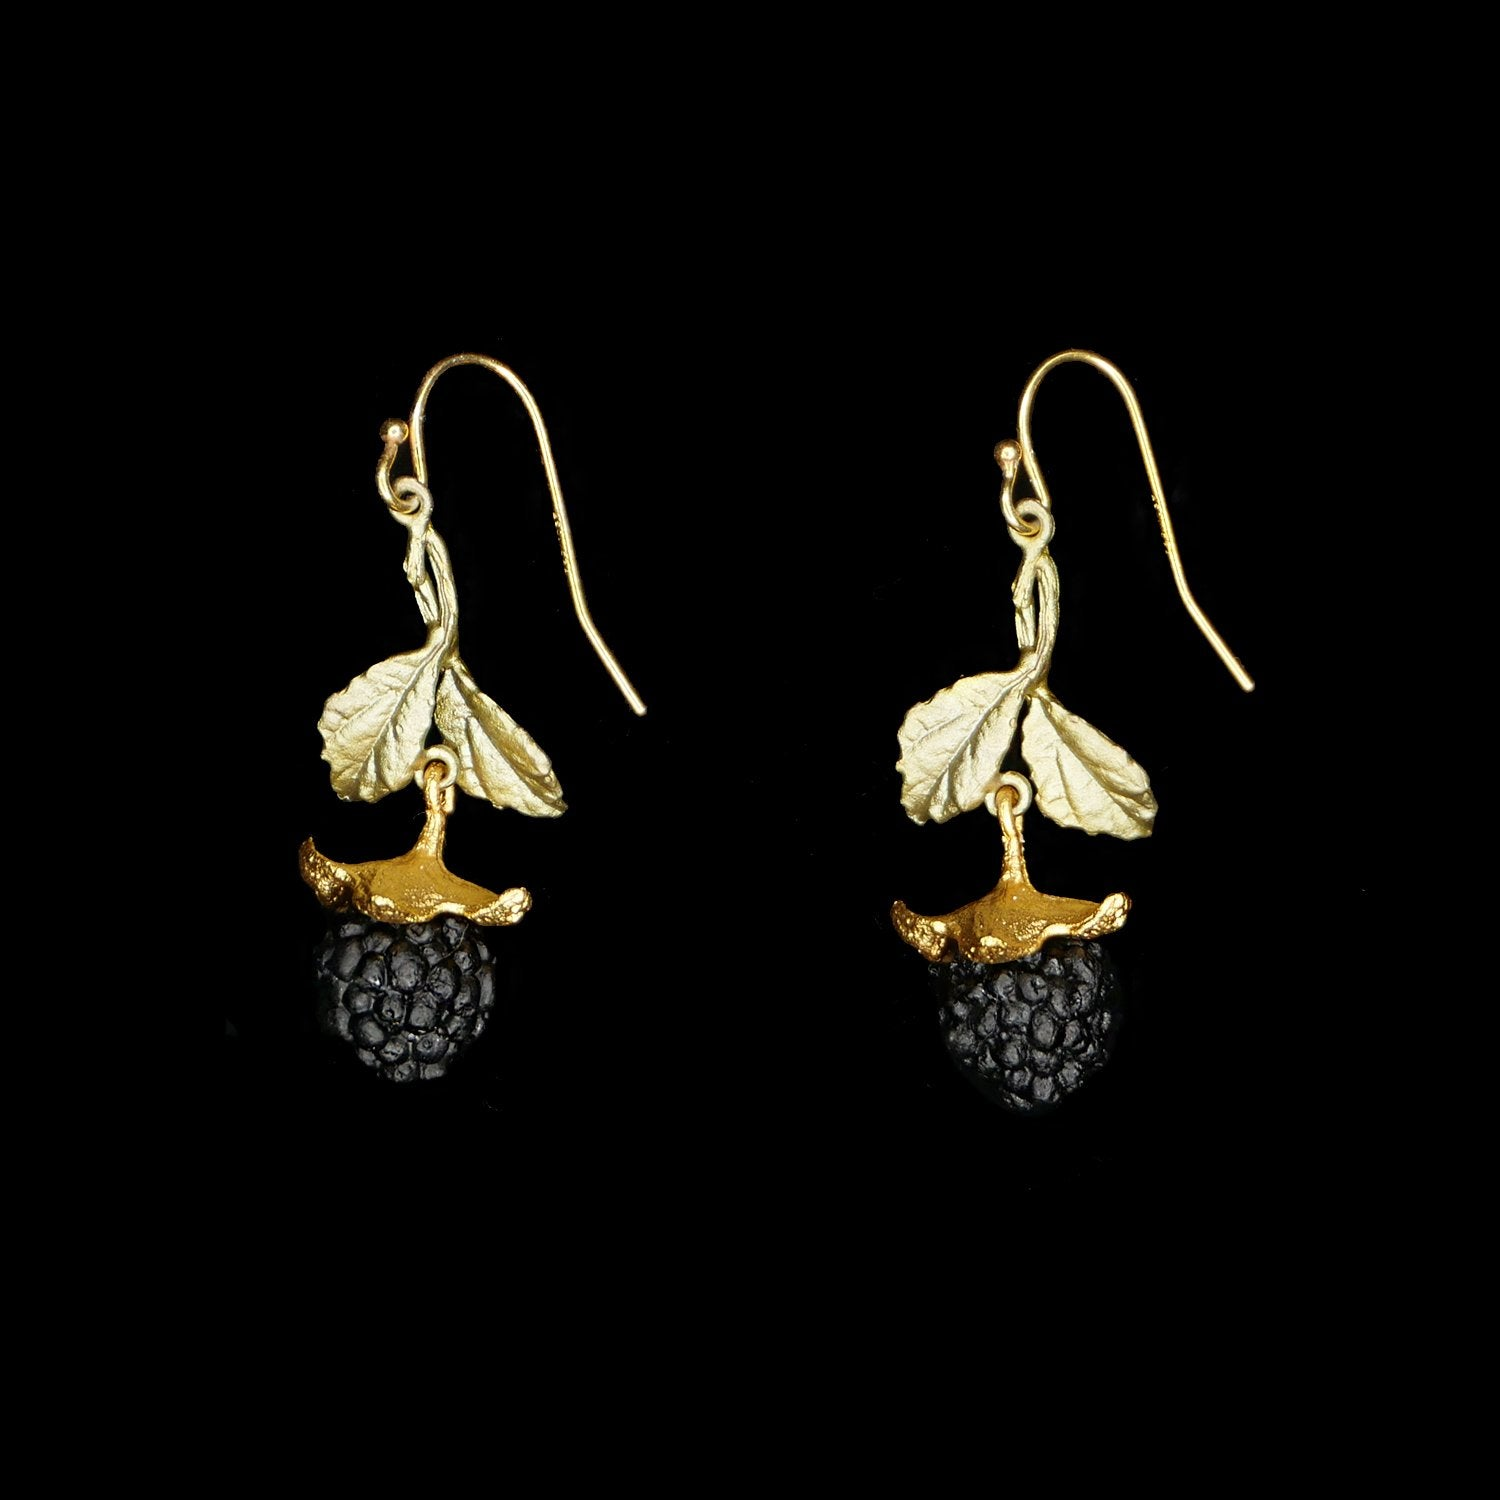 Blackberry Earrings - Leaf Dangle Wire